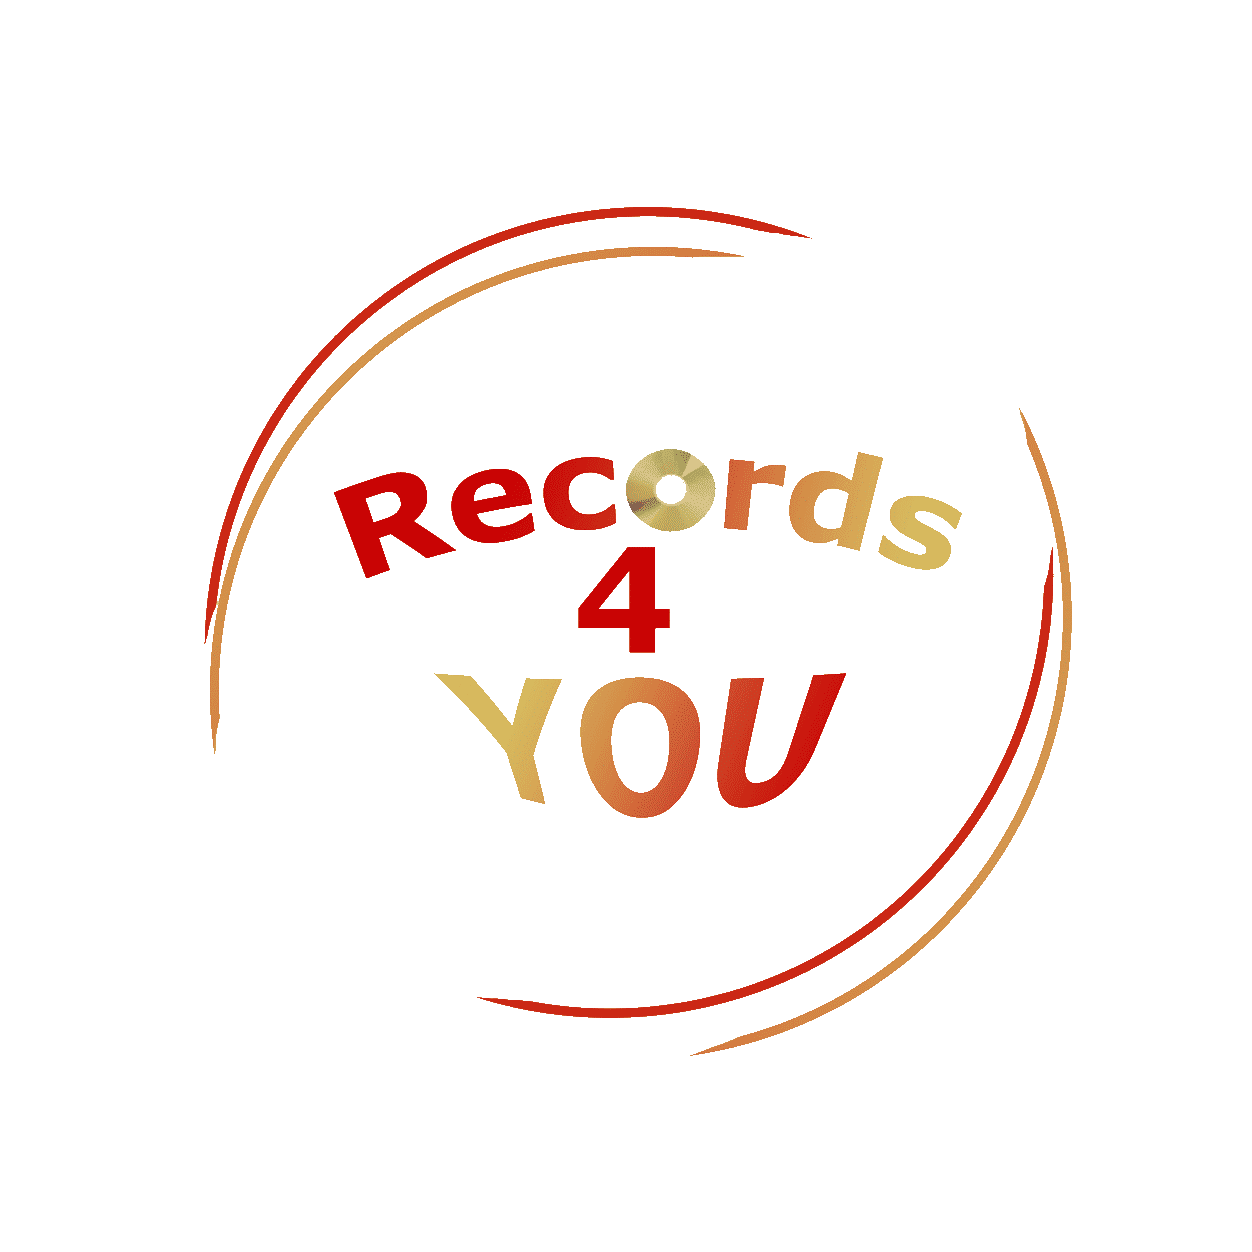 logo-records4you Kopie